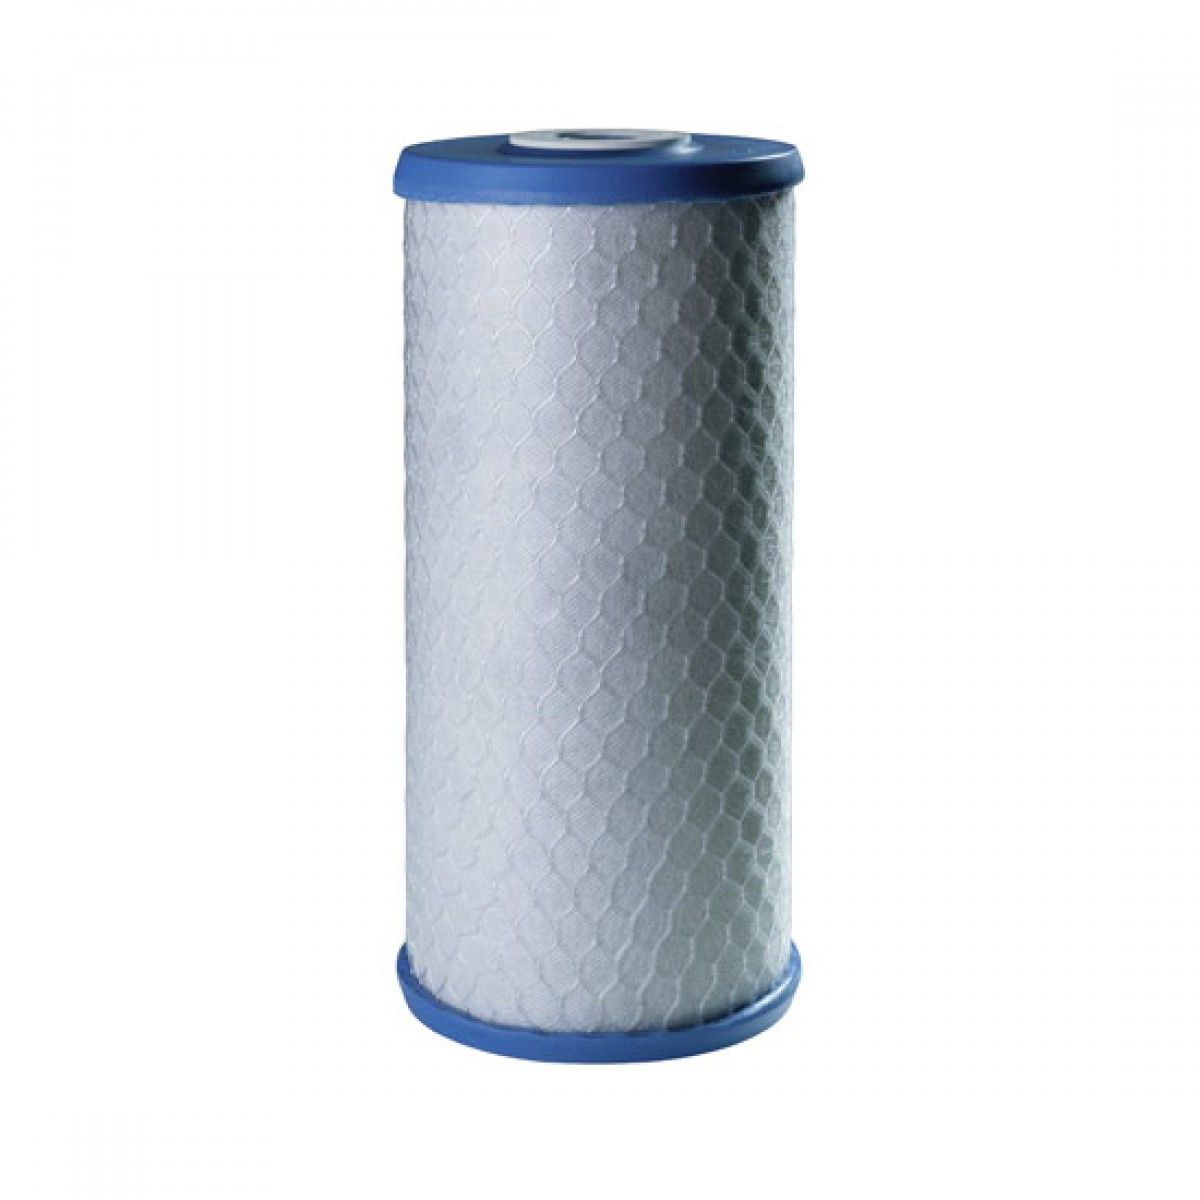 cb6 omnifilter whole house water filter. Black Bedroom Furniture Sets. Home Design Ideas